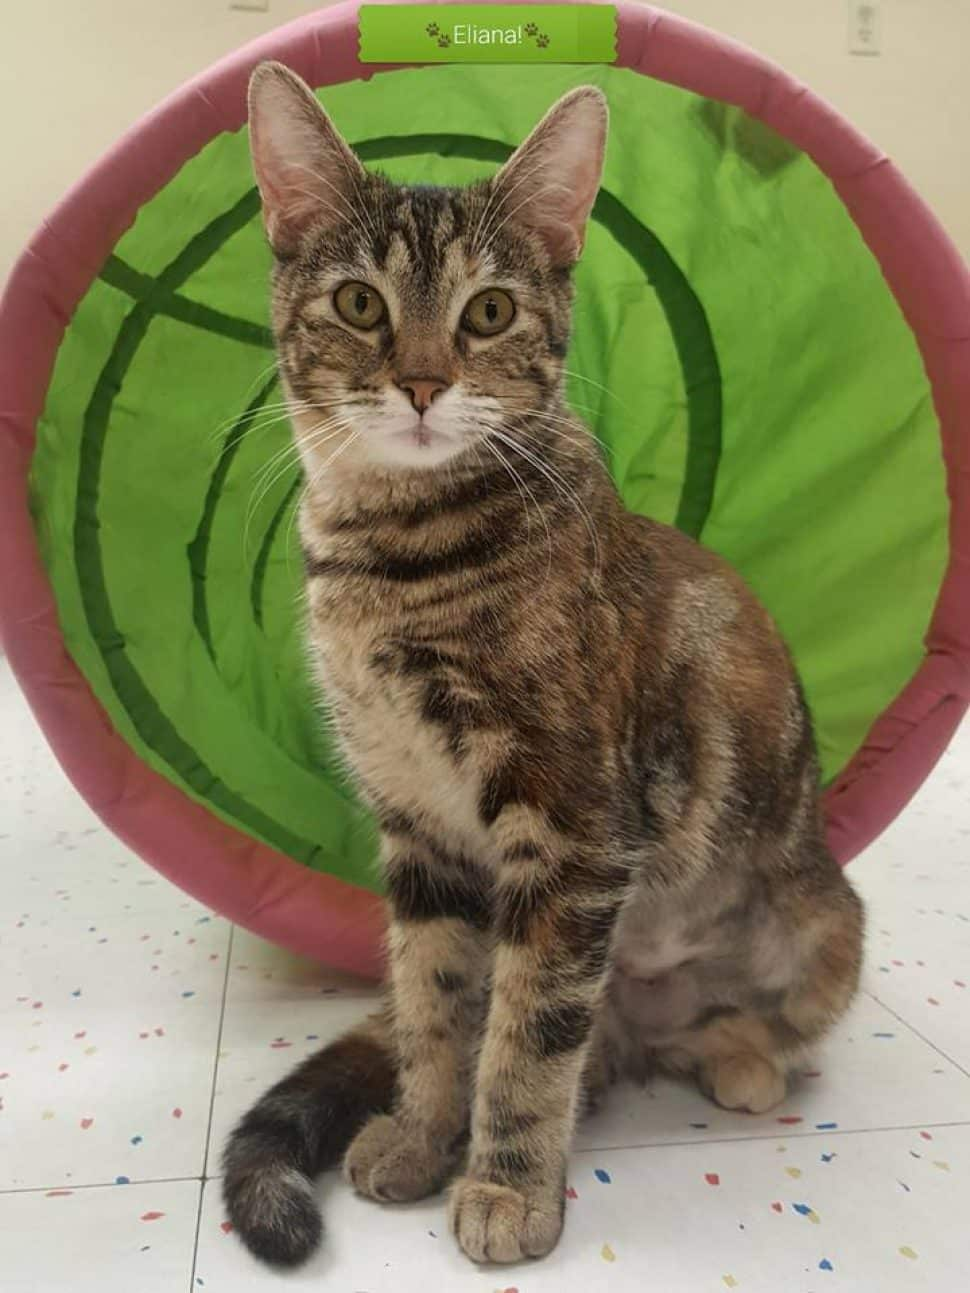 Brown tabby with white muzzle and bib sits in front of green cat tunnel.